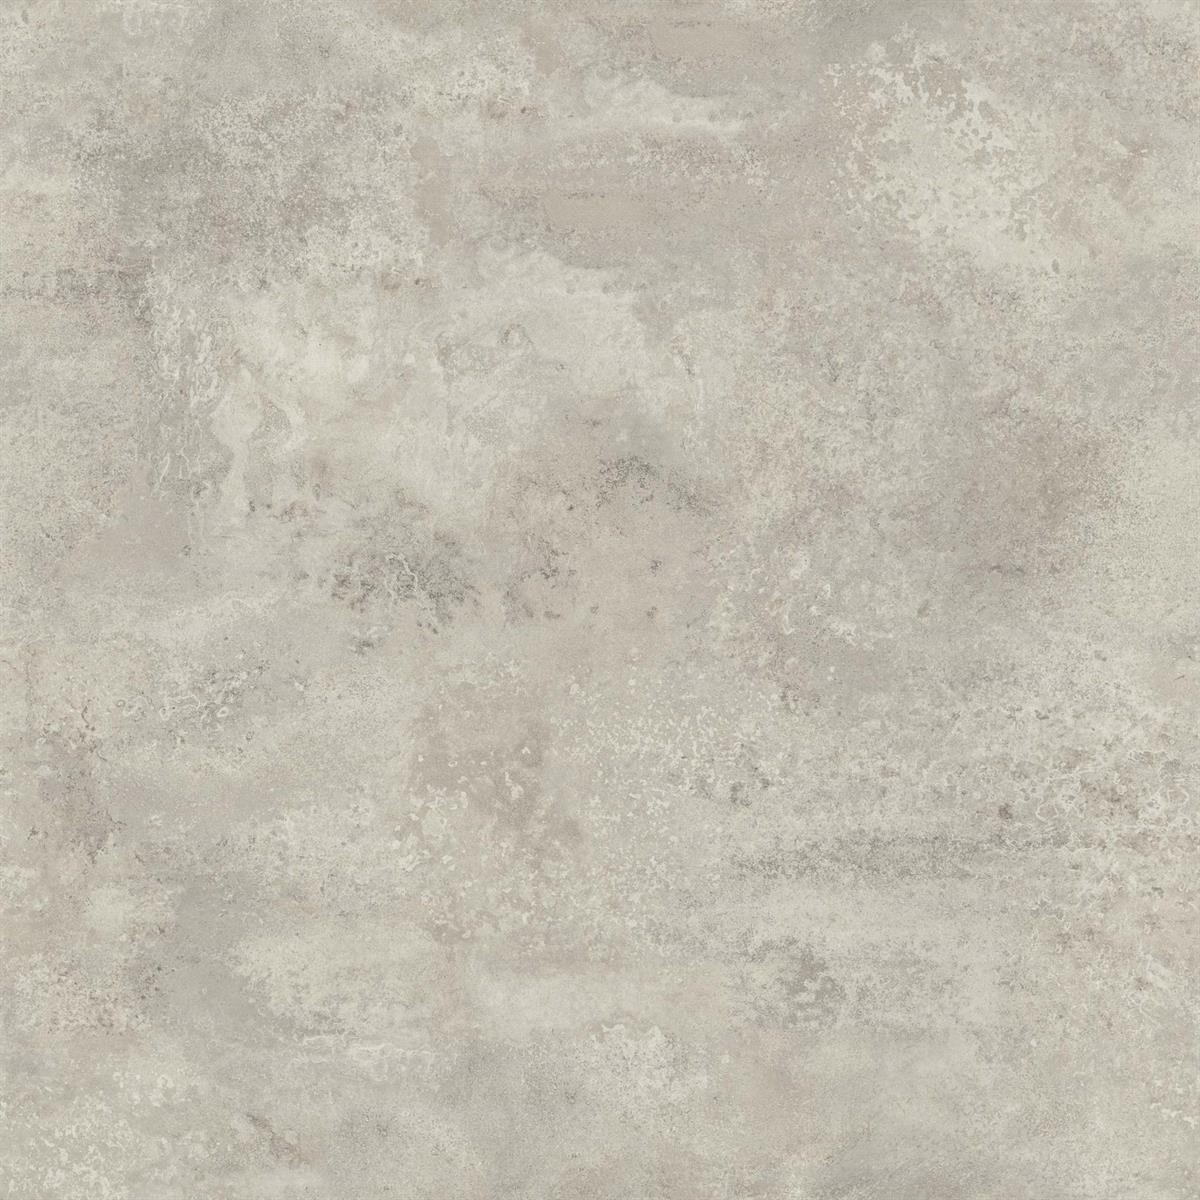 Egger Premium Ceramic Chalk kitchen worktop sample.